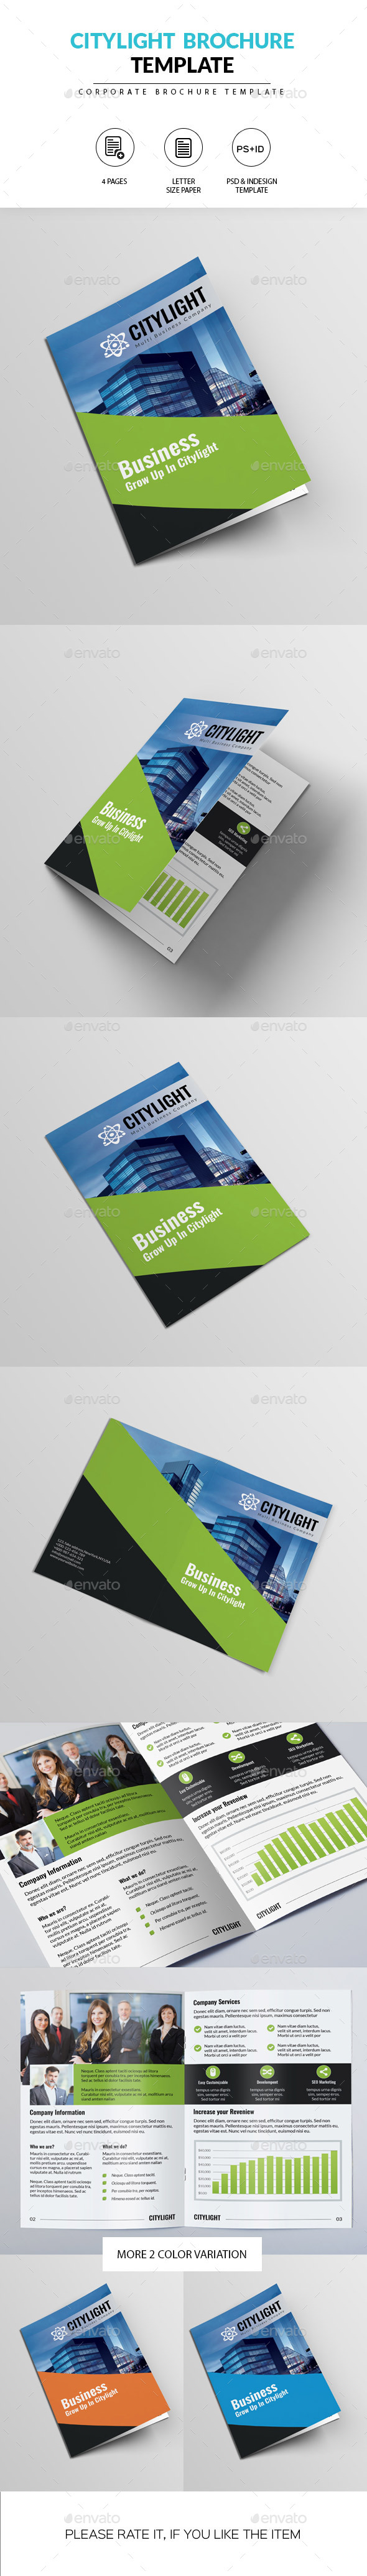 GraphicRiver Corporate Brochure-CityLight 10413047